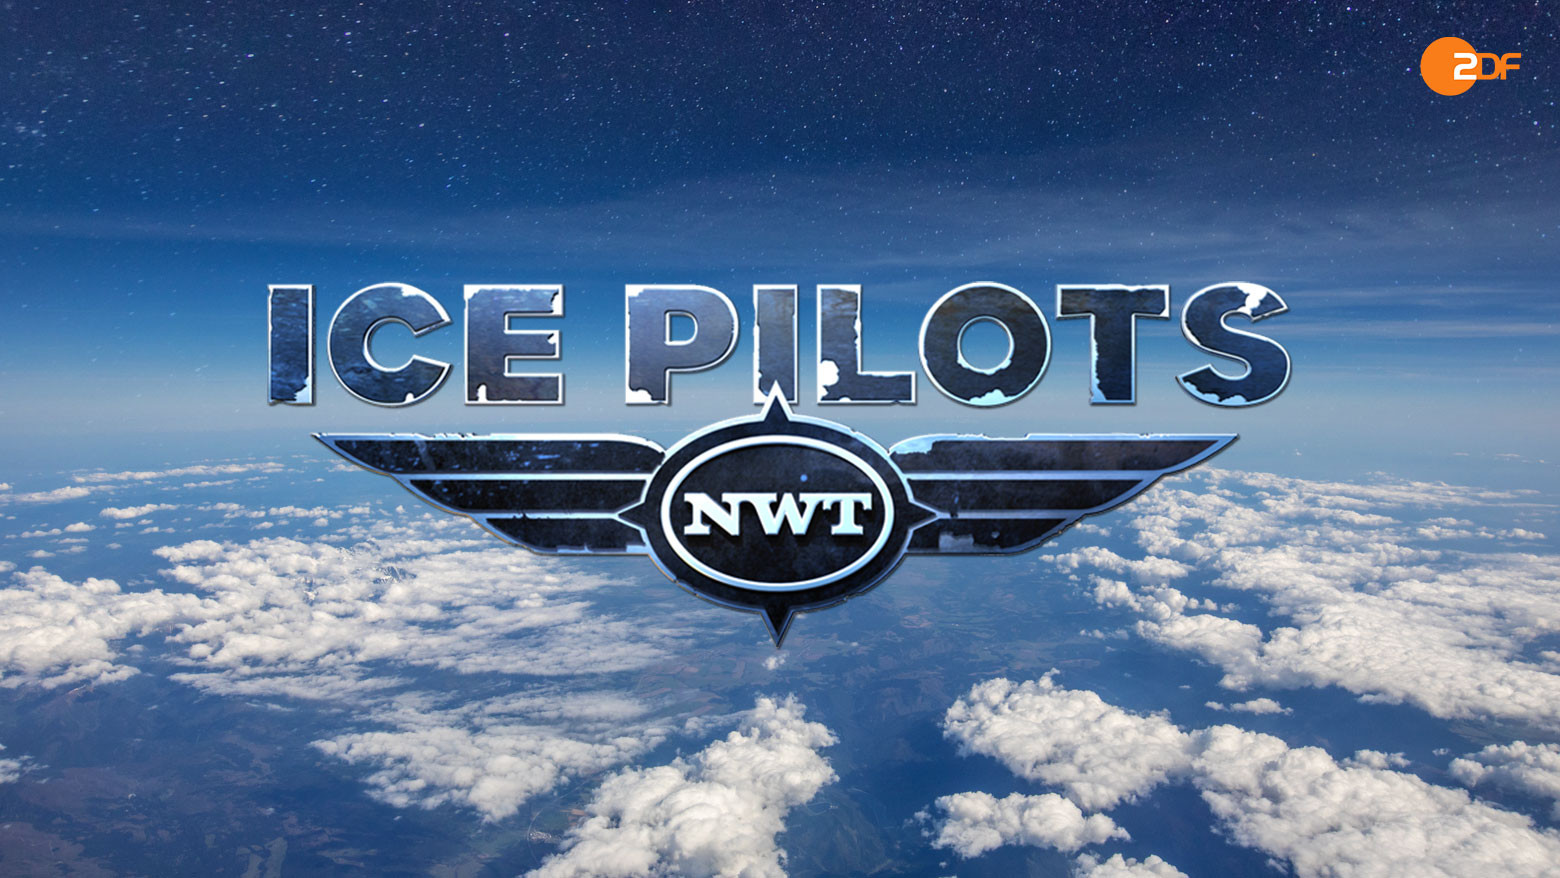 Ice Pilots DE featuredImage.jpg